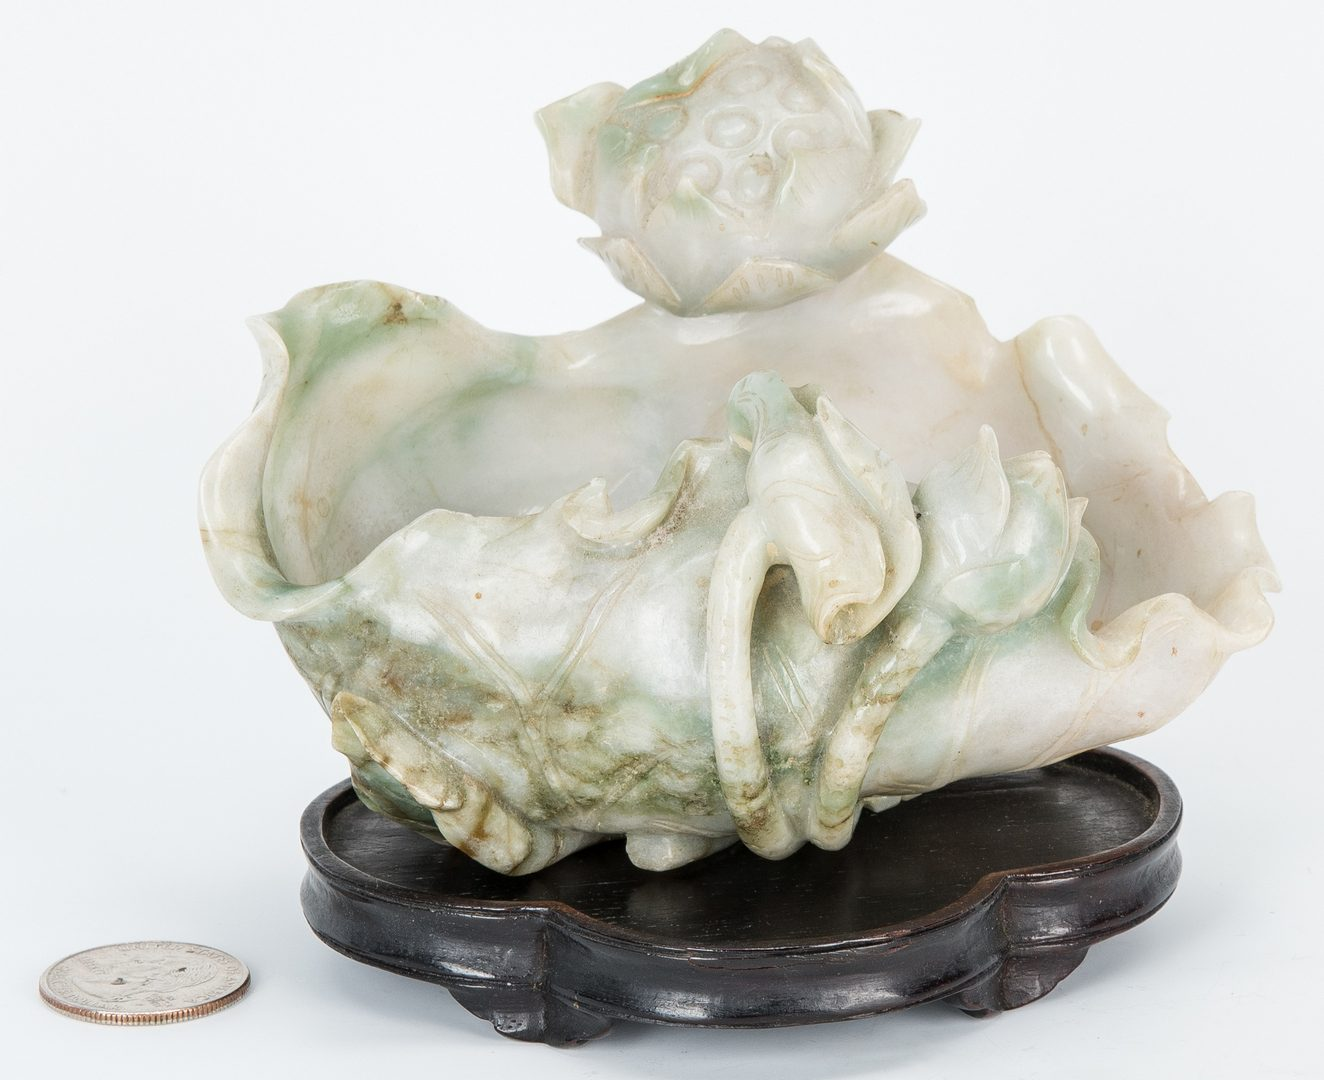 Lot 4: Carved Jade Lotus Blossom Bowl w/ Stand